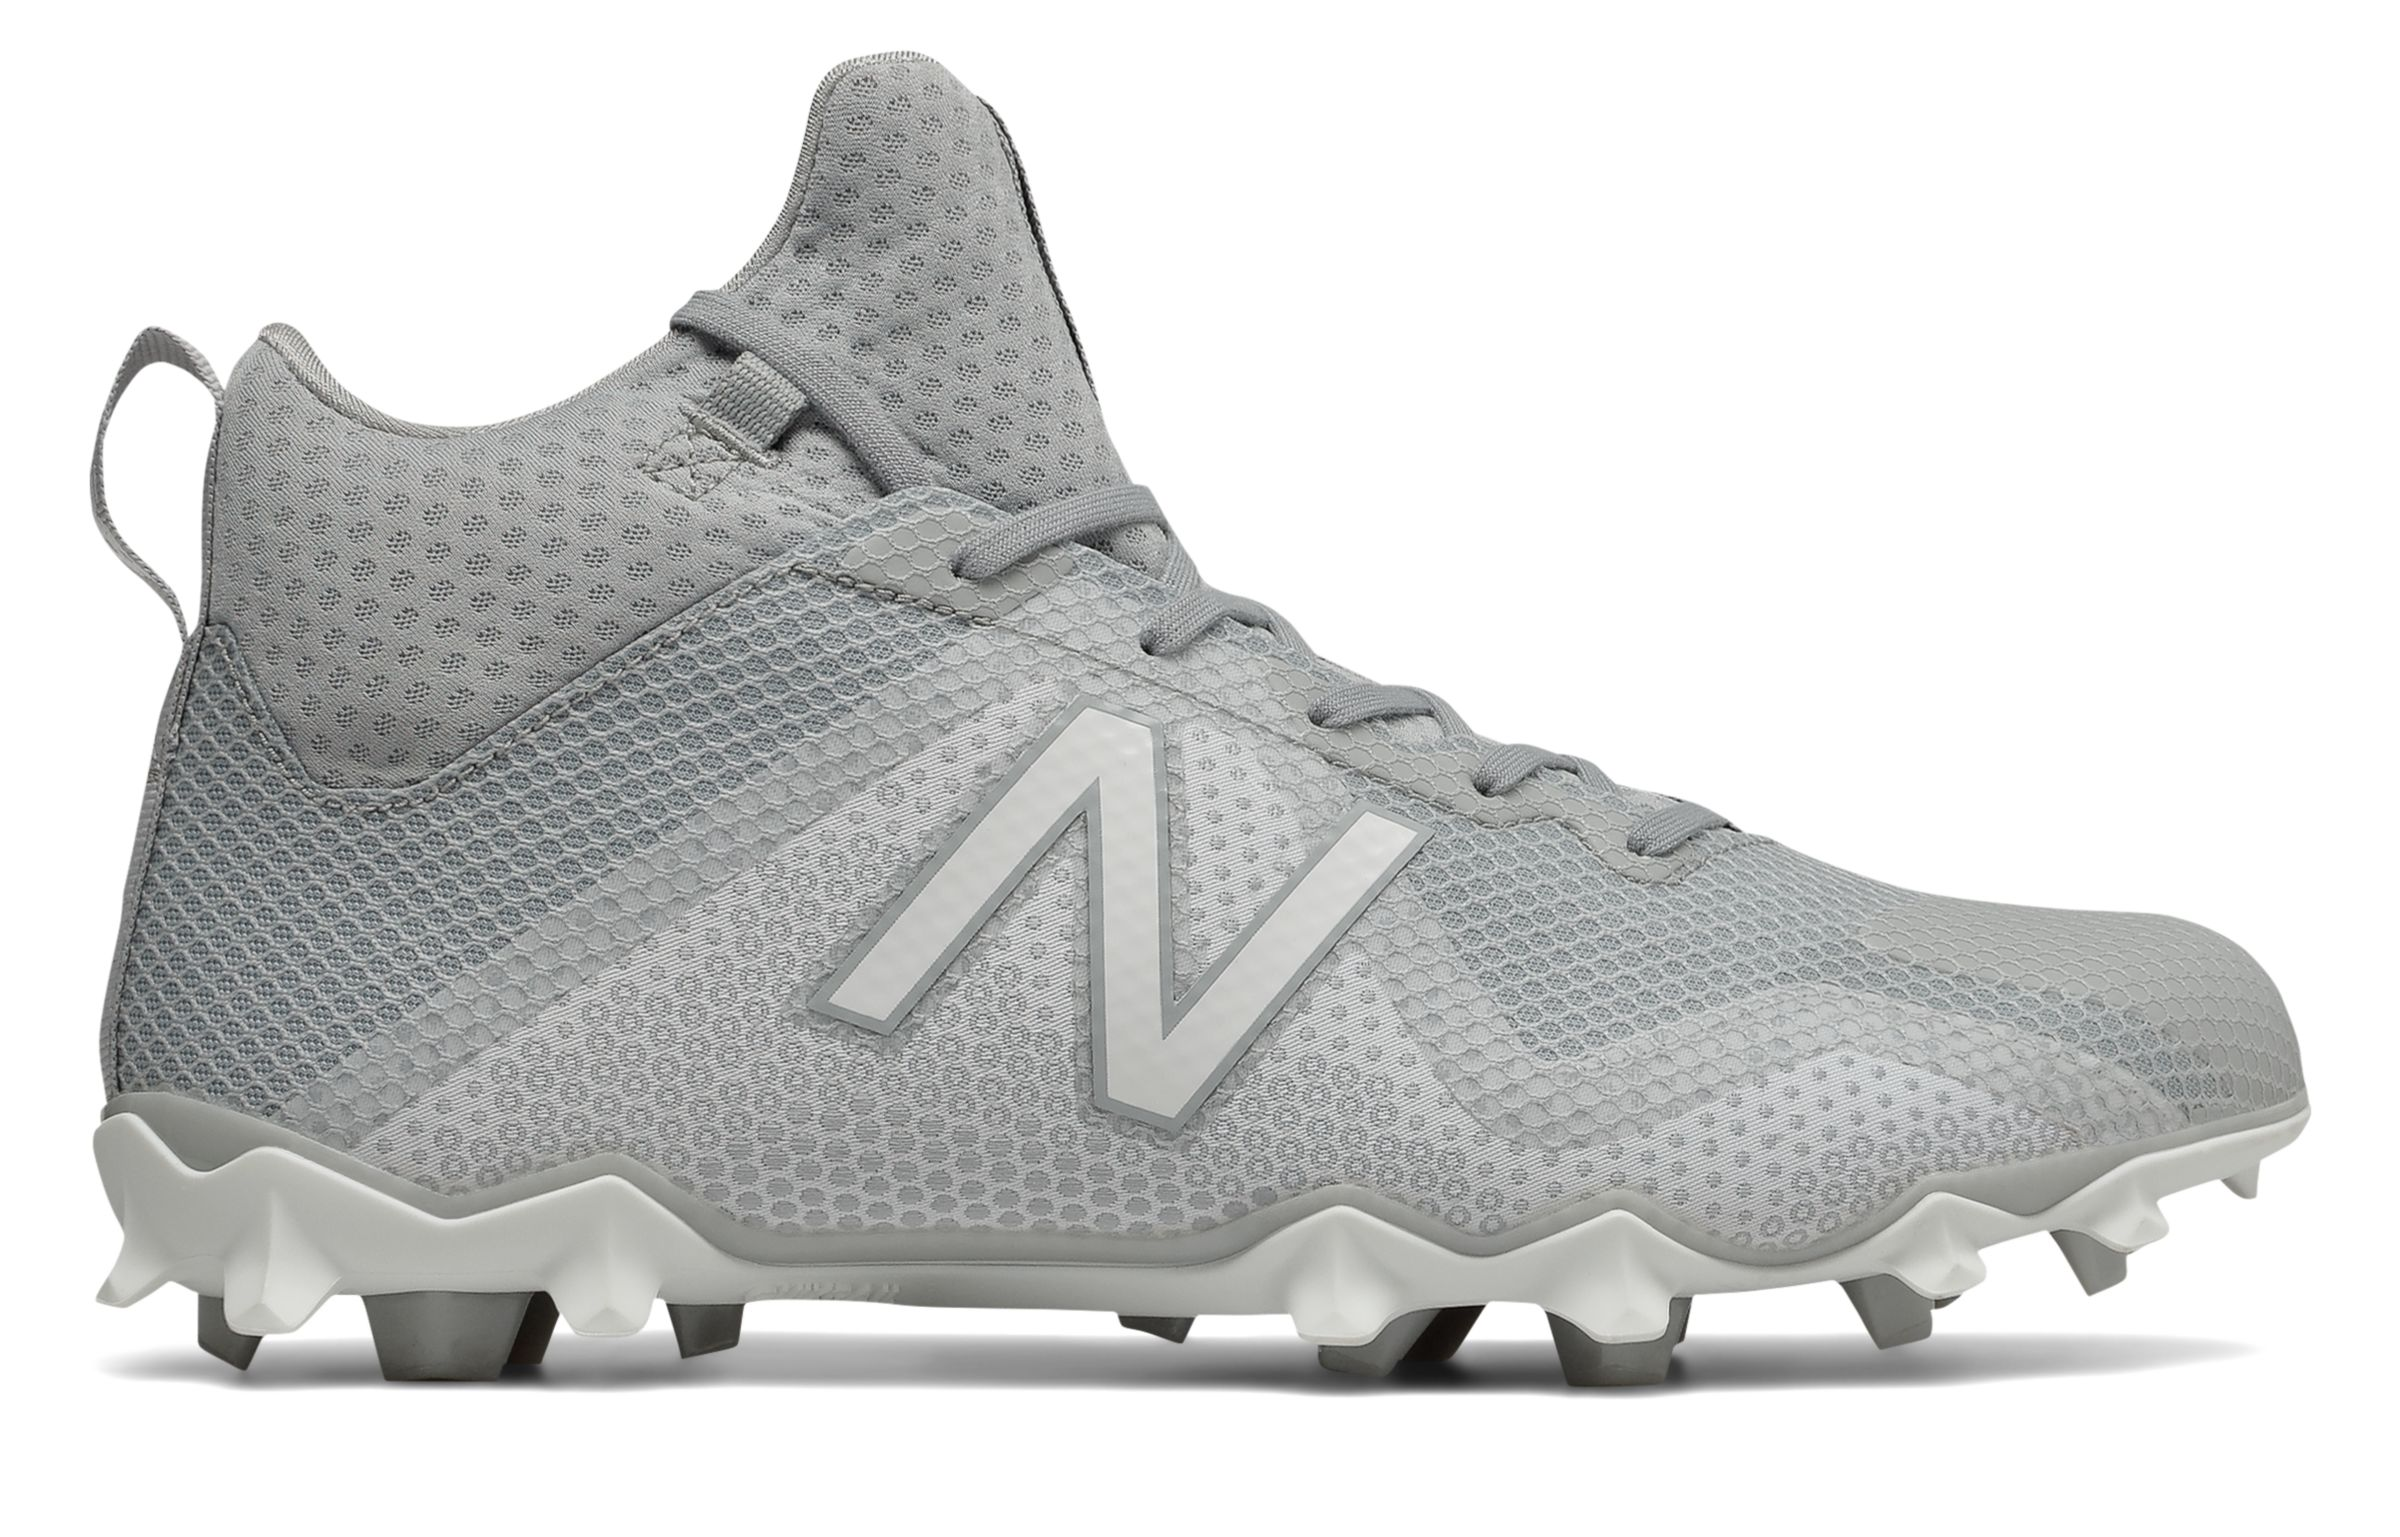 d28a7981b572 New Balance Male Men's Freezelx Lacrosse Cleat Adult Shoes Grey With ...